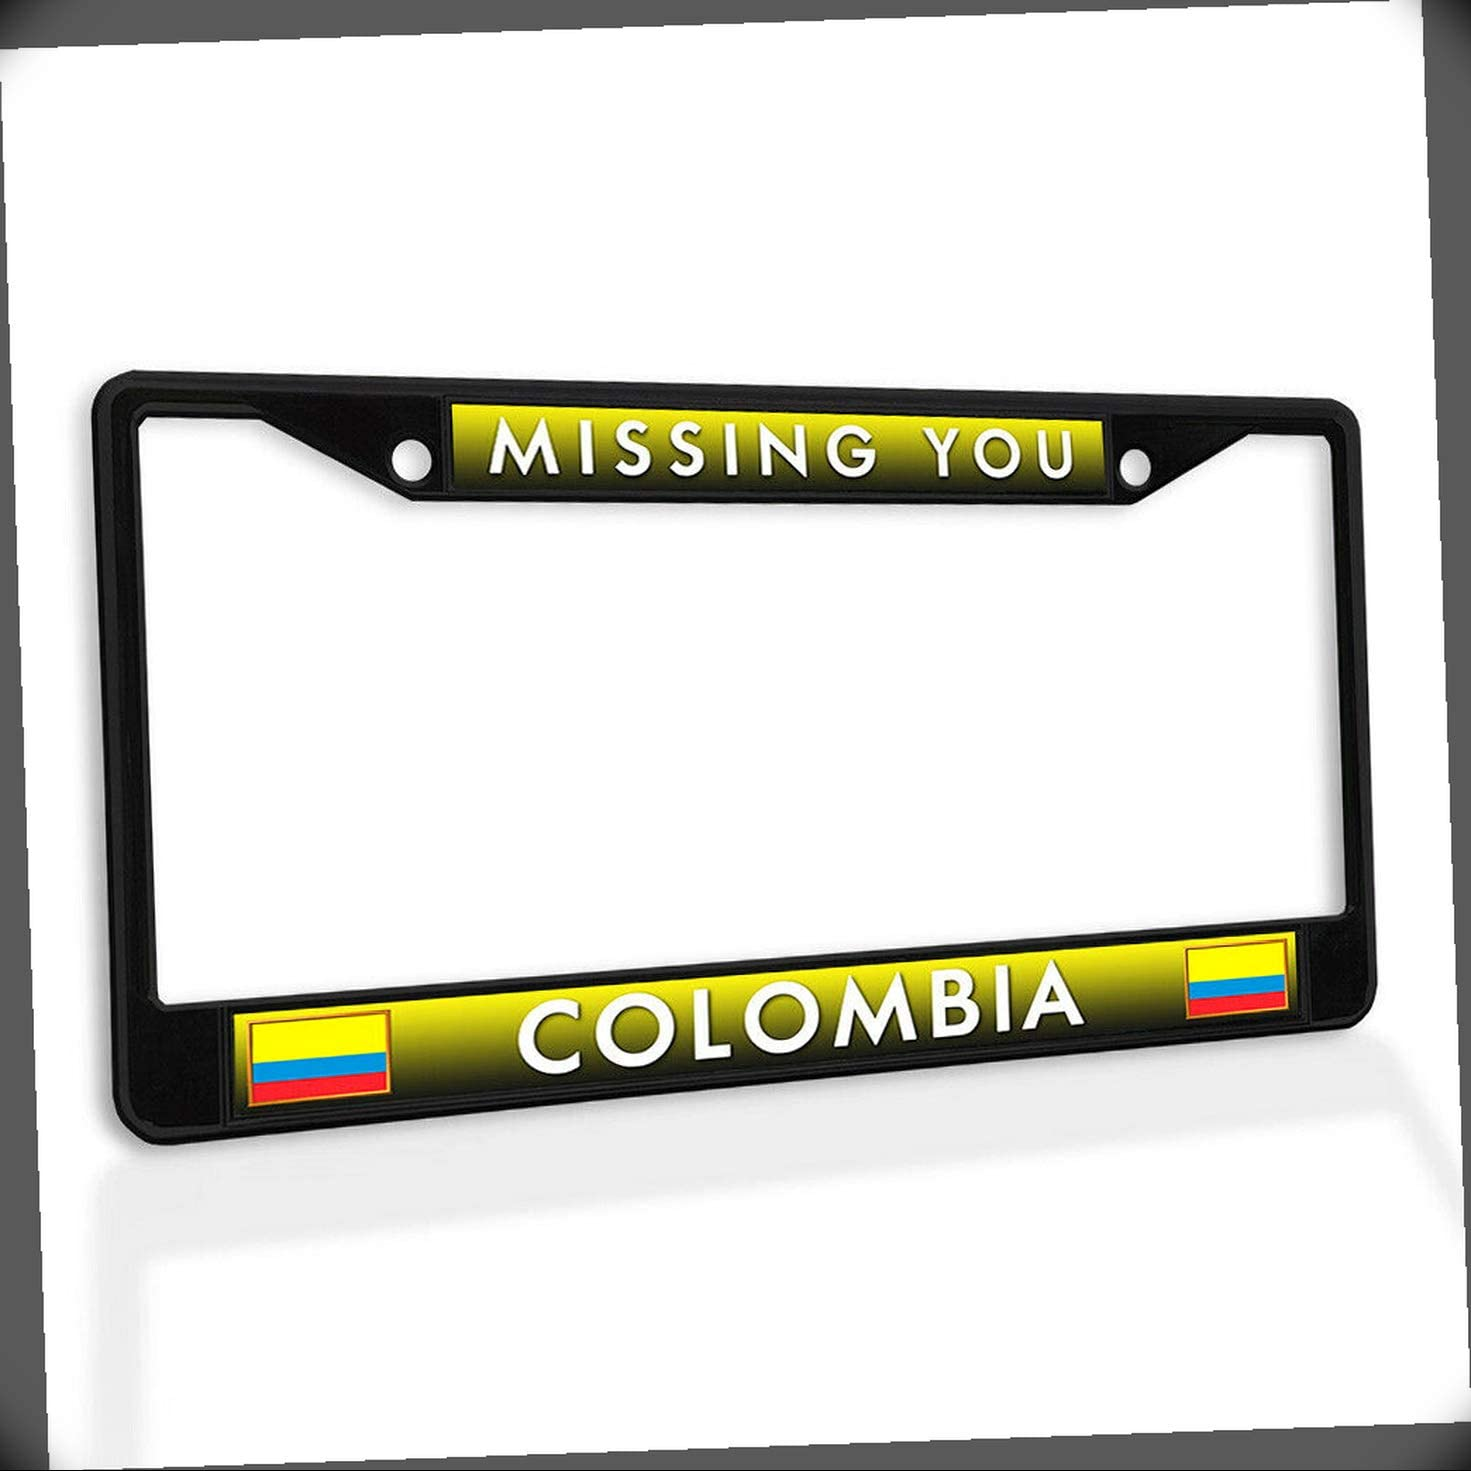 New License Plate Frame Max Limited time sale 67% OFF Missing You Metal Insert Colombia Car Fr